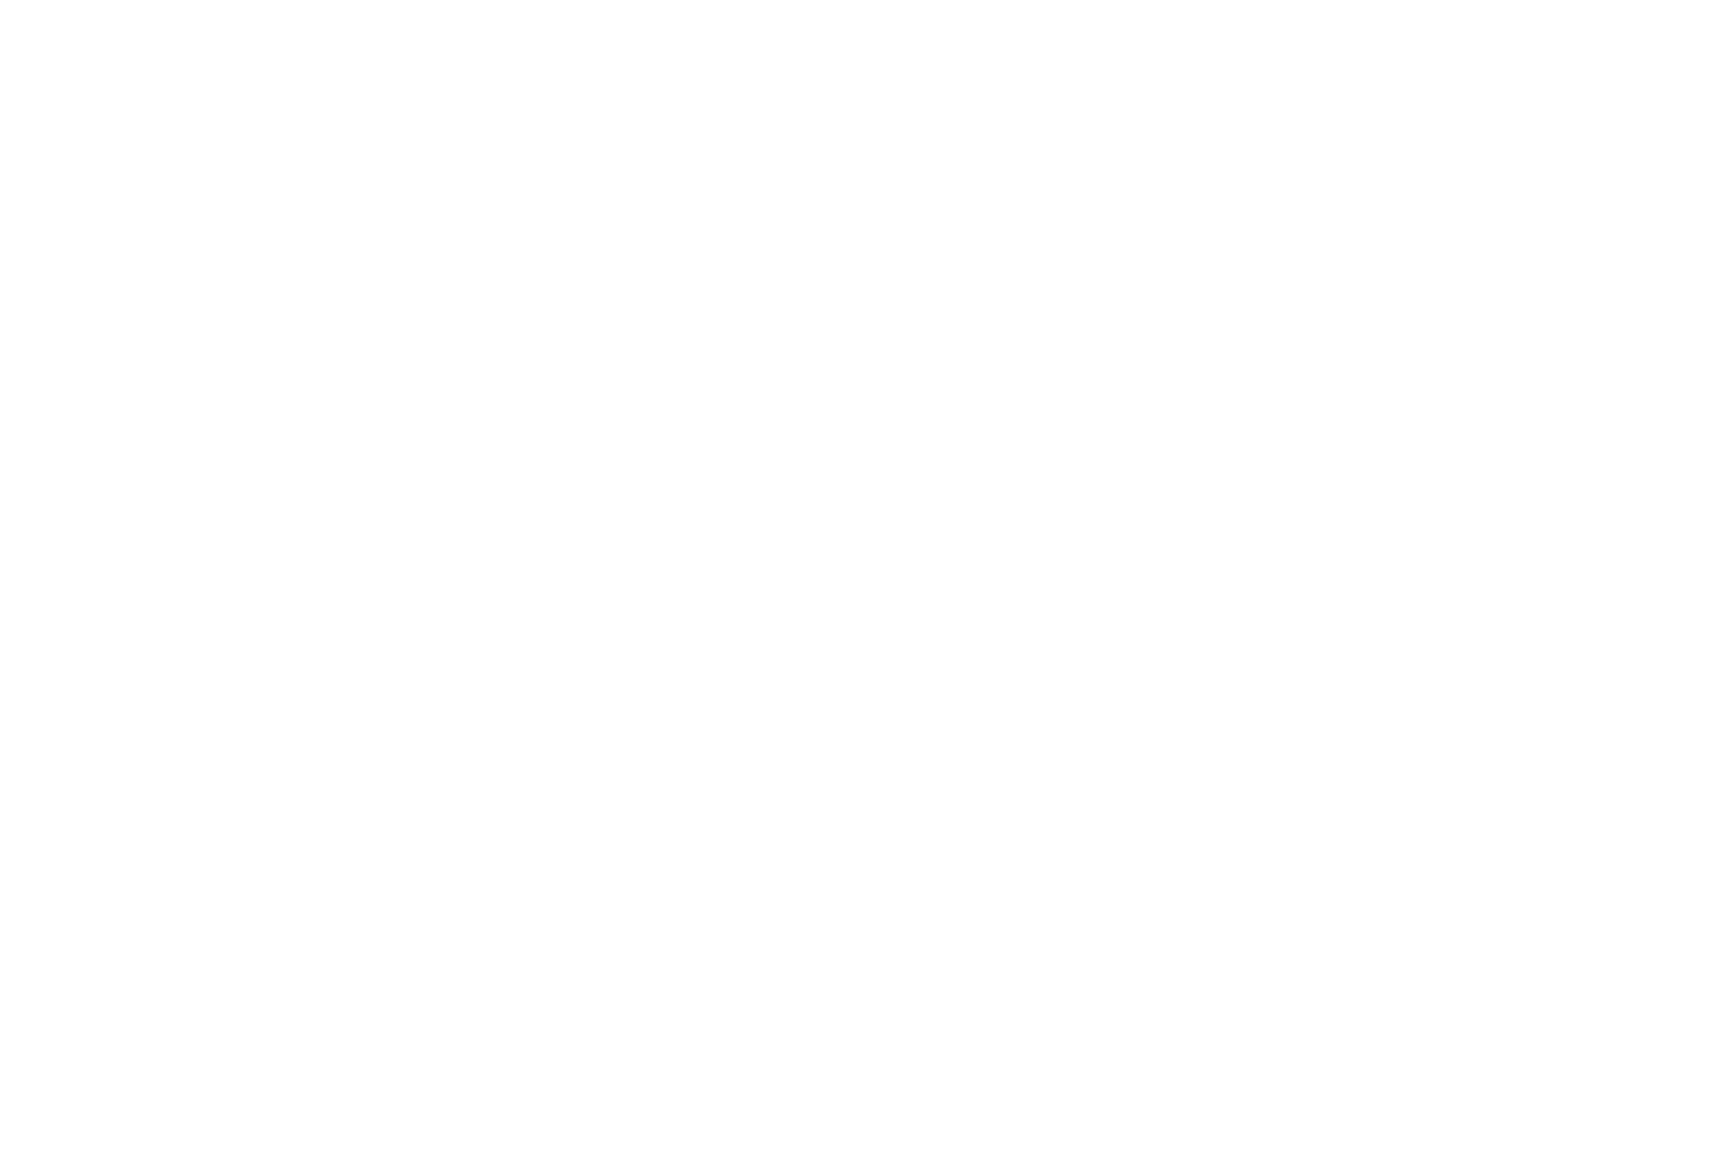 OFFICIAL SELECTION - SF INDIEFEST - San Francisco 2018